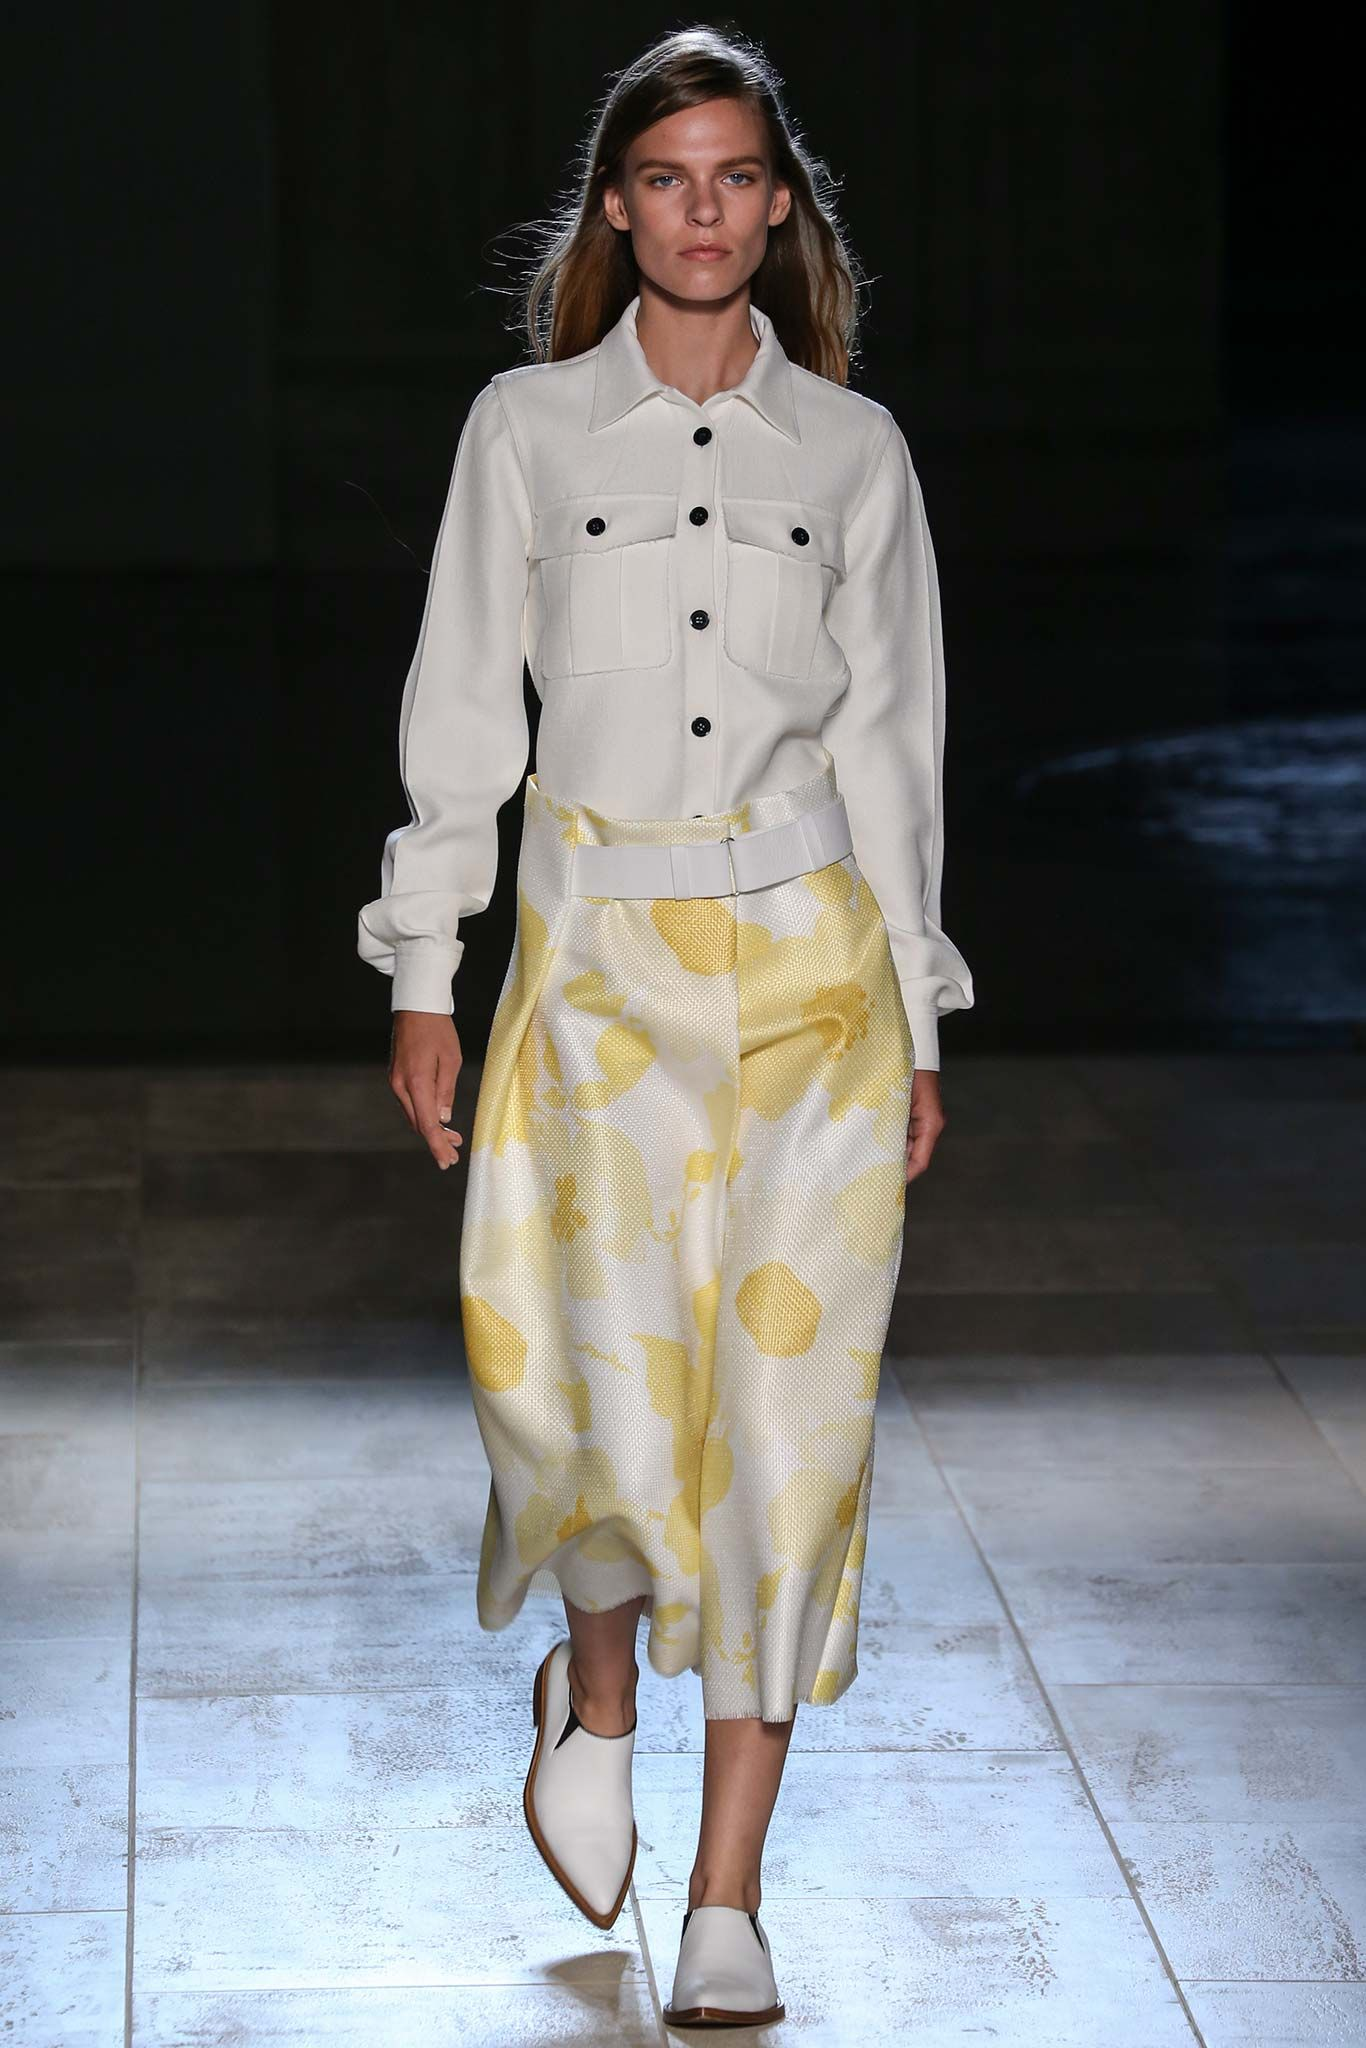 /spring-2015-ready-to-wear/victoria-beckham/collection/28